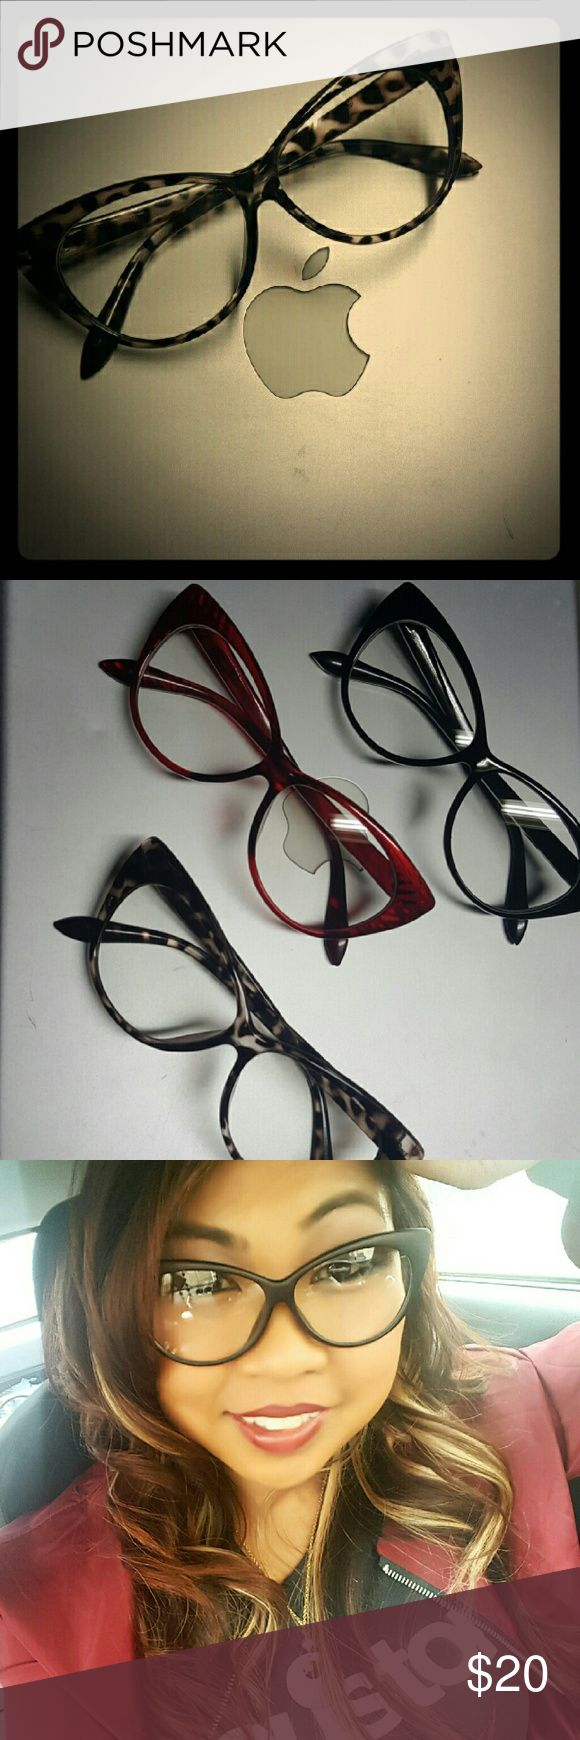 Cheetah print Cat Eye Retro Fashion Glasses Adding a little attitude to any outfit... :-) Accessories Glasses